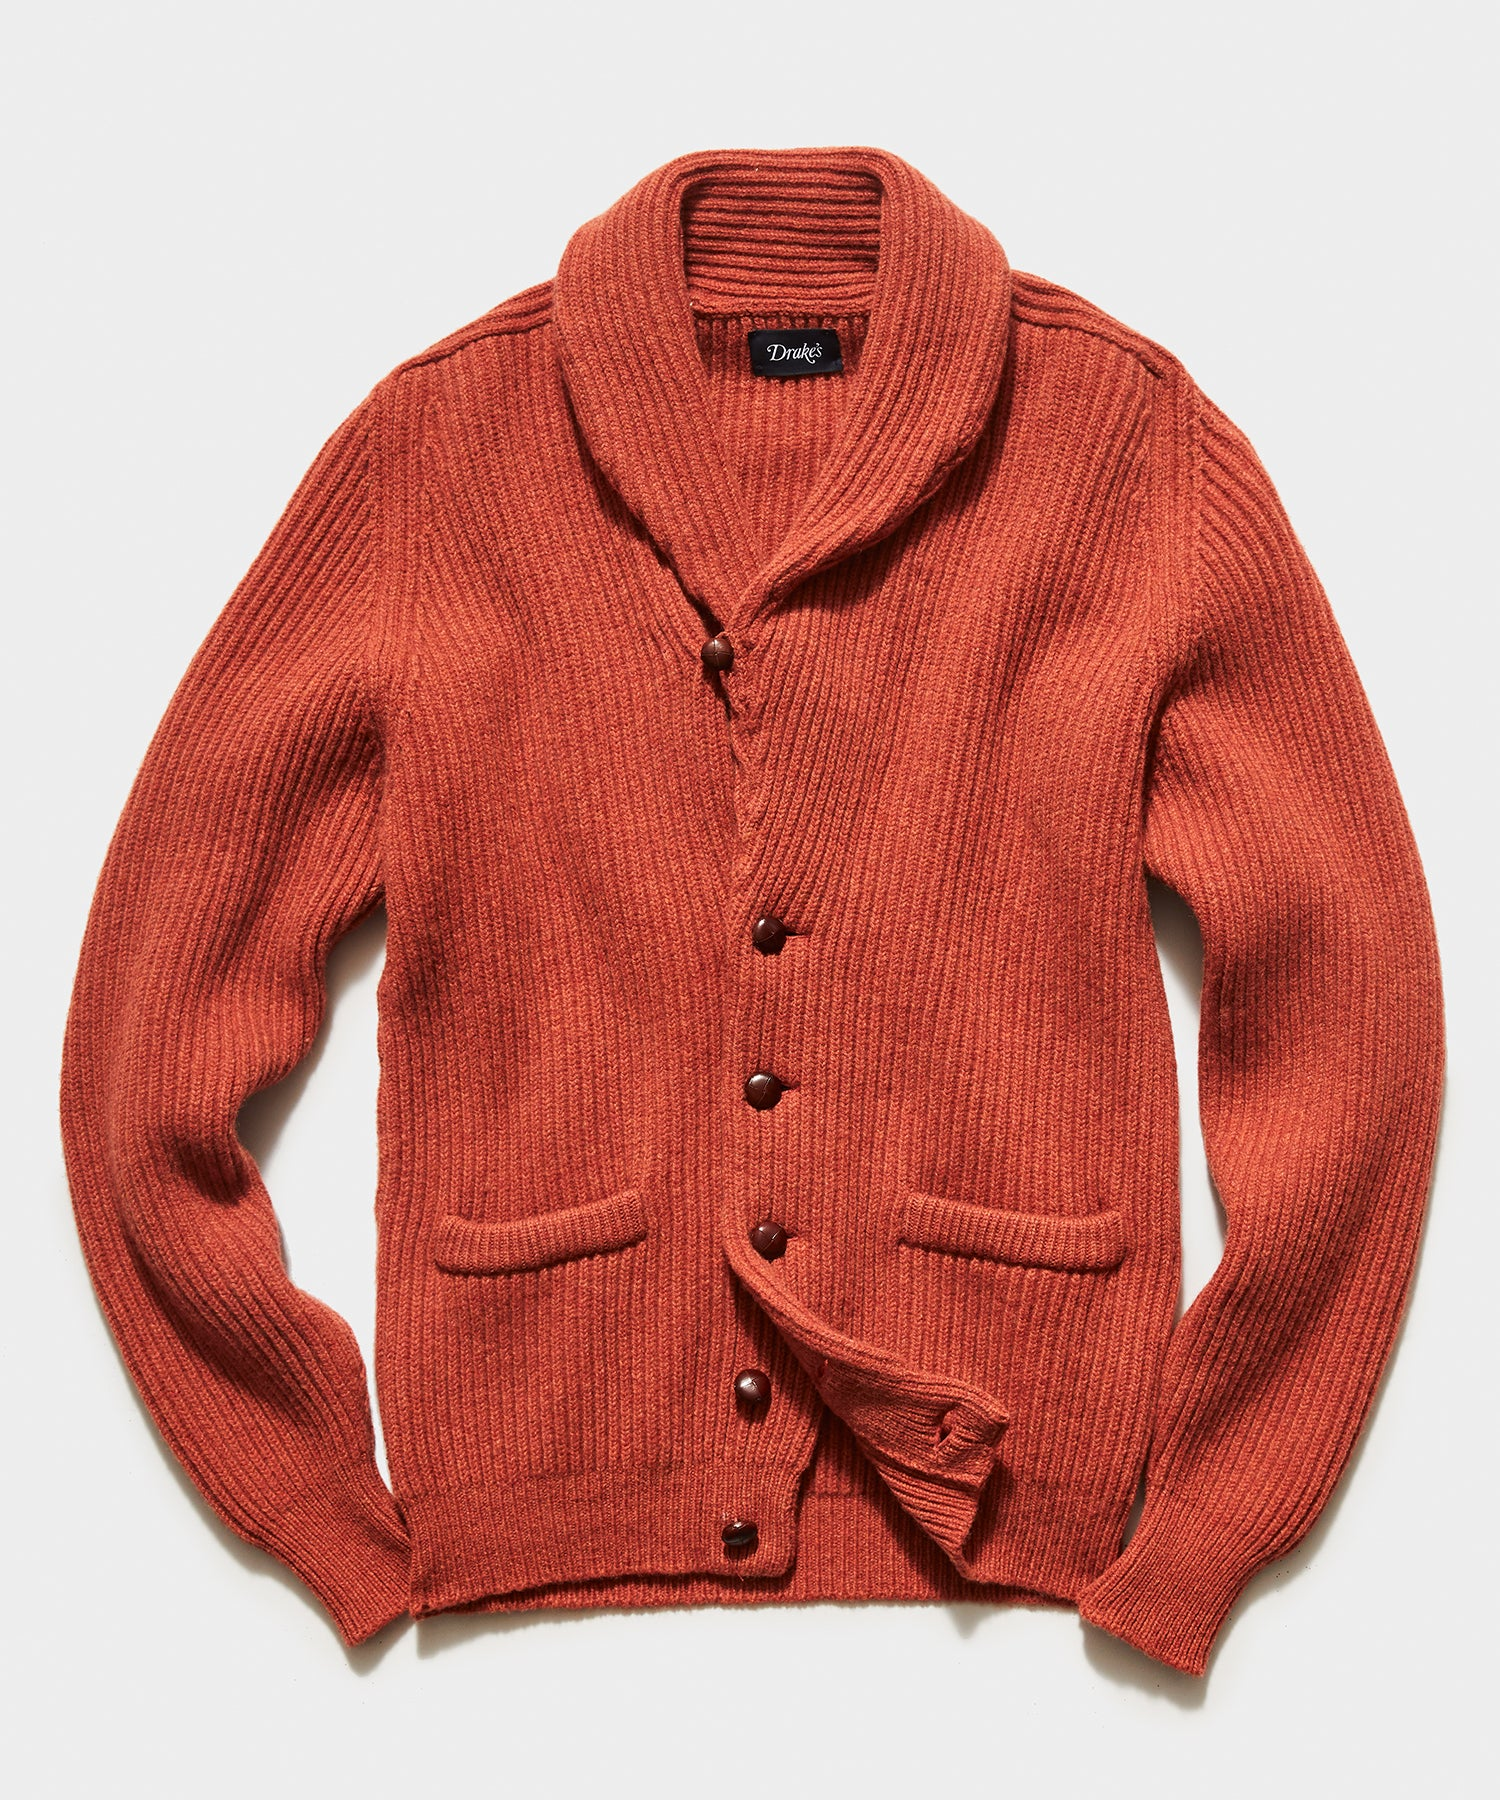 TS x Drake's Lambswool Shawl Collar Cardigan in Orange